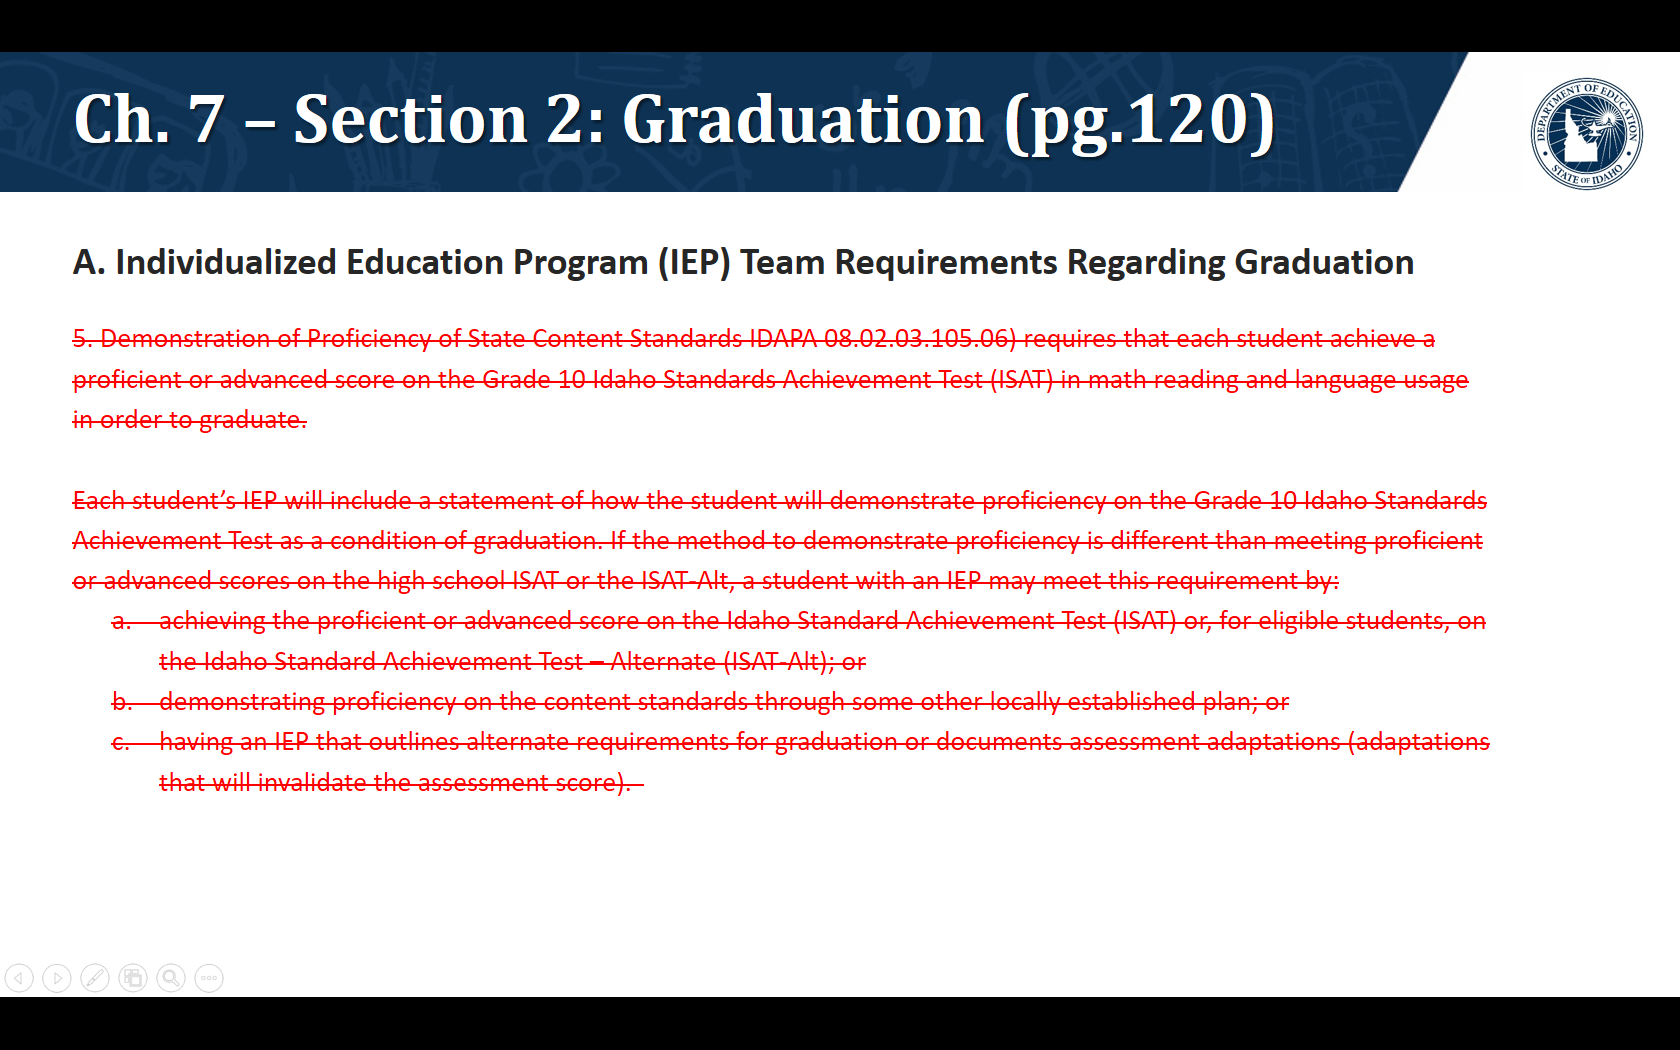 A. Individualized Education Program (IEP) Team Requirements Regarding Graduation. We are proposing to remove the following language: 5. Demonstration of Proficiency of State Content Standards IDAPA 08.02.03.105.06) requires that each student achieve a proficient or advanced score on the Grade 10 Idaho Standards Achievement Test (ISAT) in math reading and language usage in order to graduate.   Each student's IEP will include a statement of how the student will demonstrate proficiency on the Grade 10 Idaho Standards Achievement Test as a condition of graduation. If the method to demonstrate proficiency is different than meeting proficient or advanced scores on the high school ISAT or the ISAT-Alt, a student with an IEP may meet this requirement by: achieving the proficient or advanced score on the Idaho Standard Achievement Test (ISAT) or, for eligible students, on the Idaho Standard Achievement Test – Alternate (ISAT-Alt); or demonstrating proficiency on the content standards through some other locally established plan; or having an IEP that outlines alternate requirements for graduation or documents assessment adaptations (adaptations that will invalidate the assessment score).